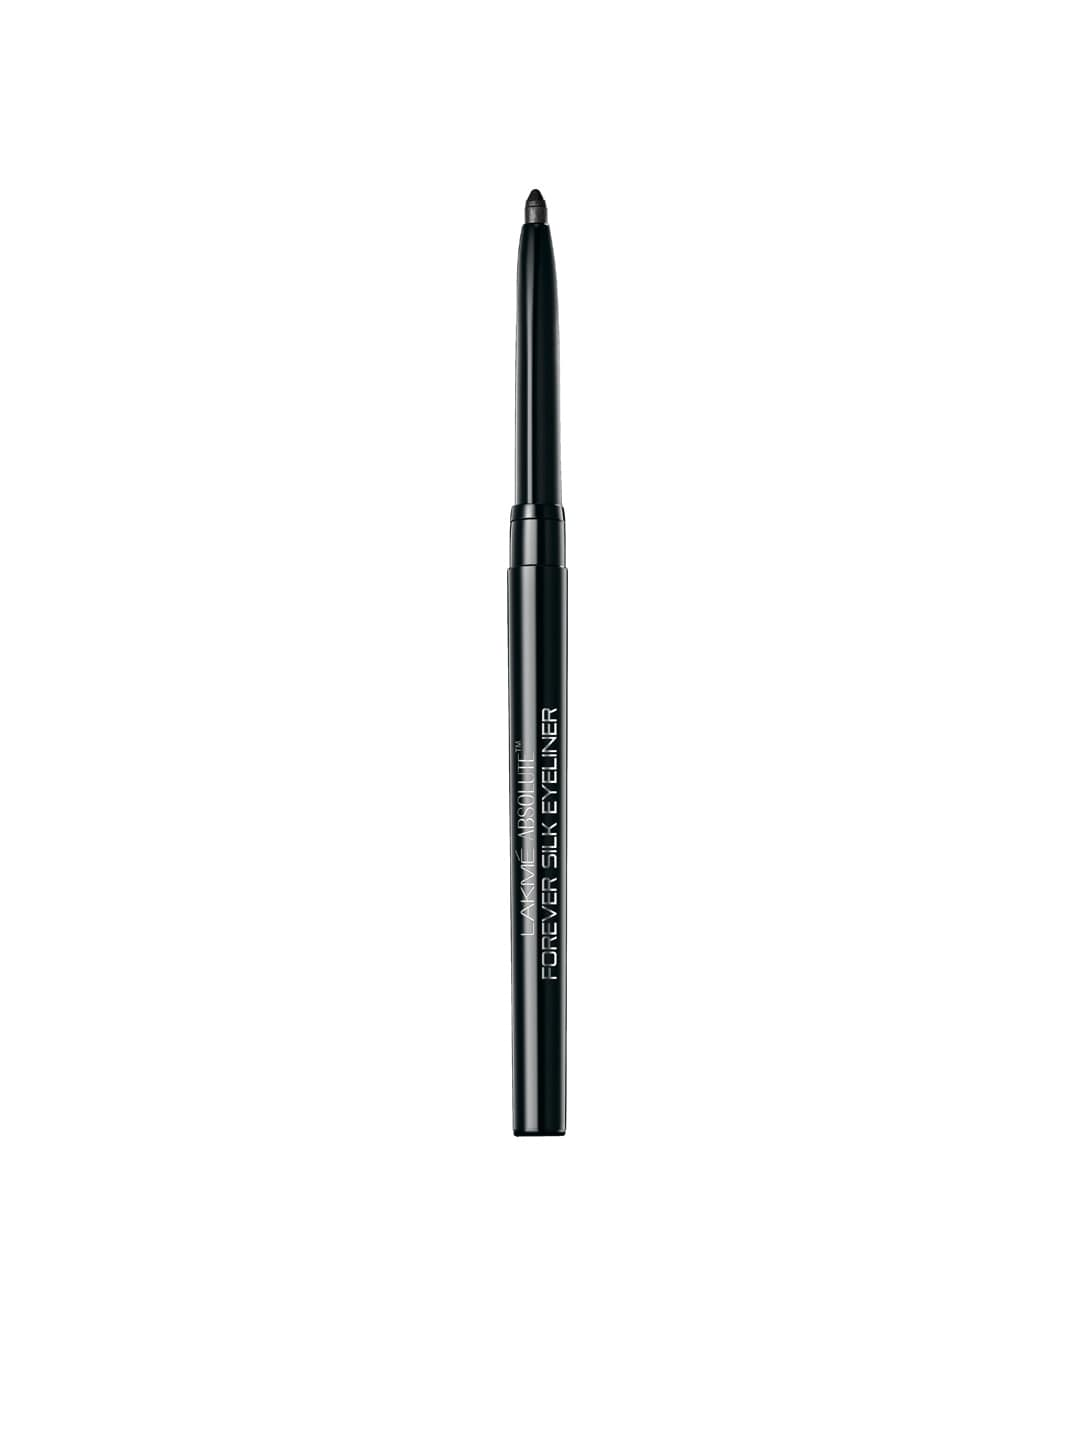 Lakme Absolute Forever Silk Blacklast Eye Liner